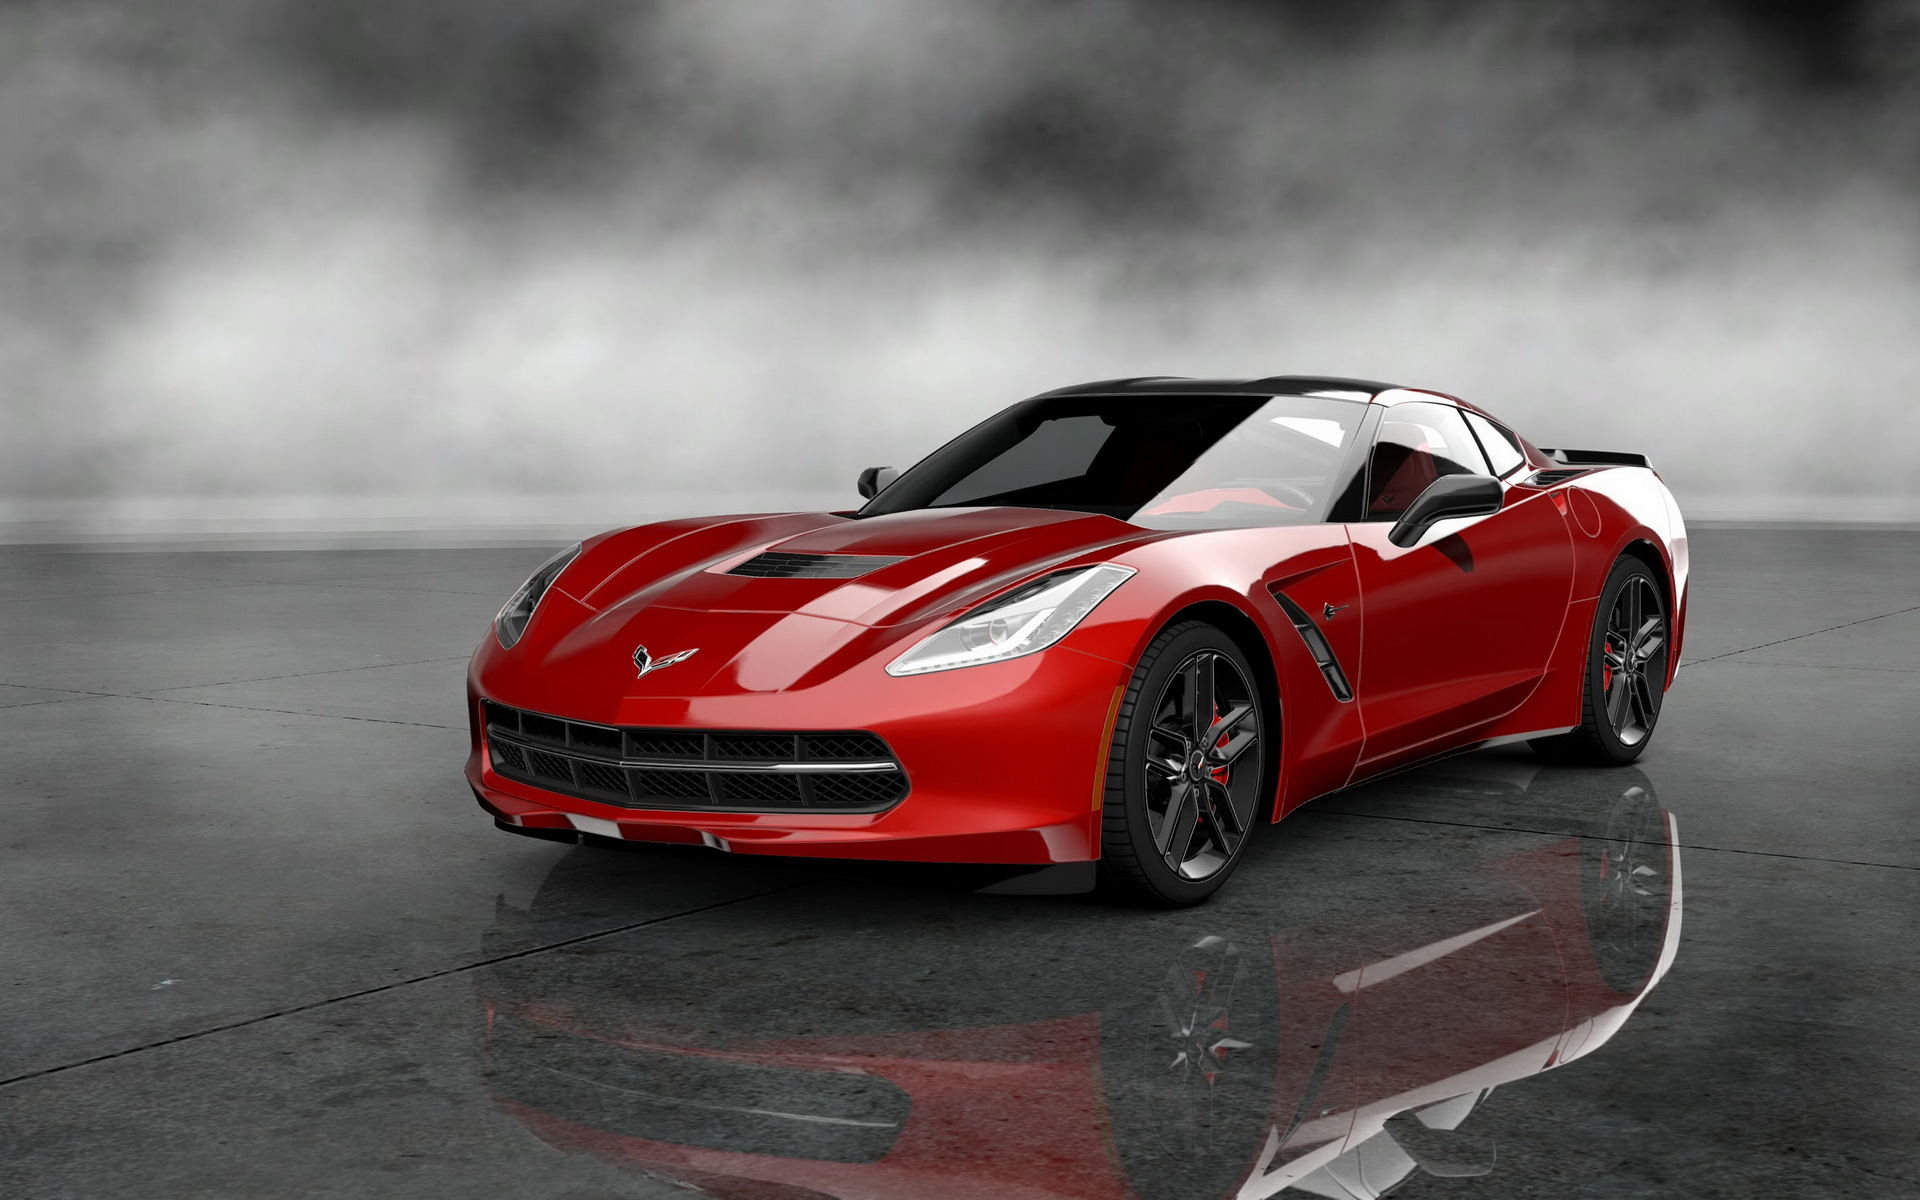 2014 corvette stingray black wallpaper 2014 corvette stingray wallpaper 600x375 2014 Corvette Stingray